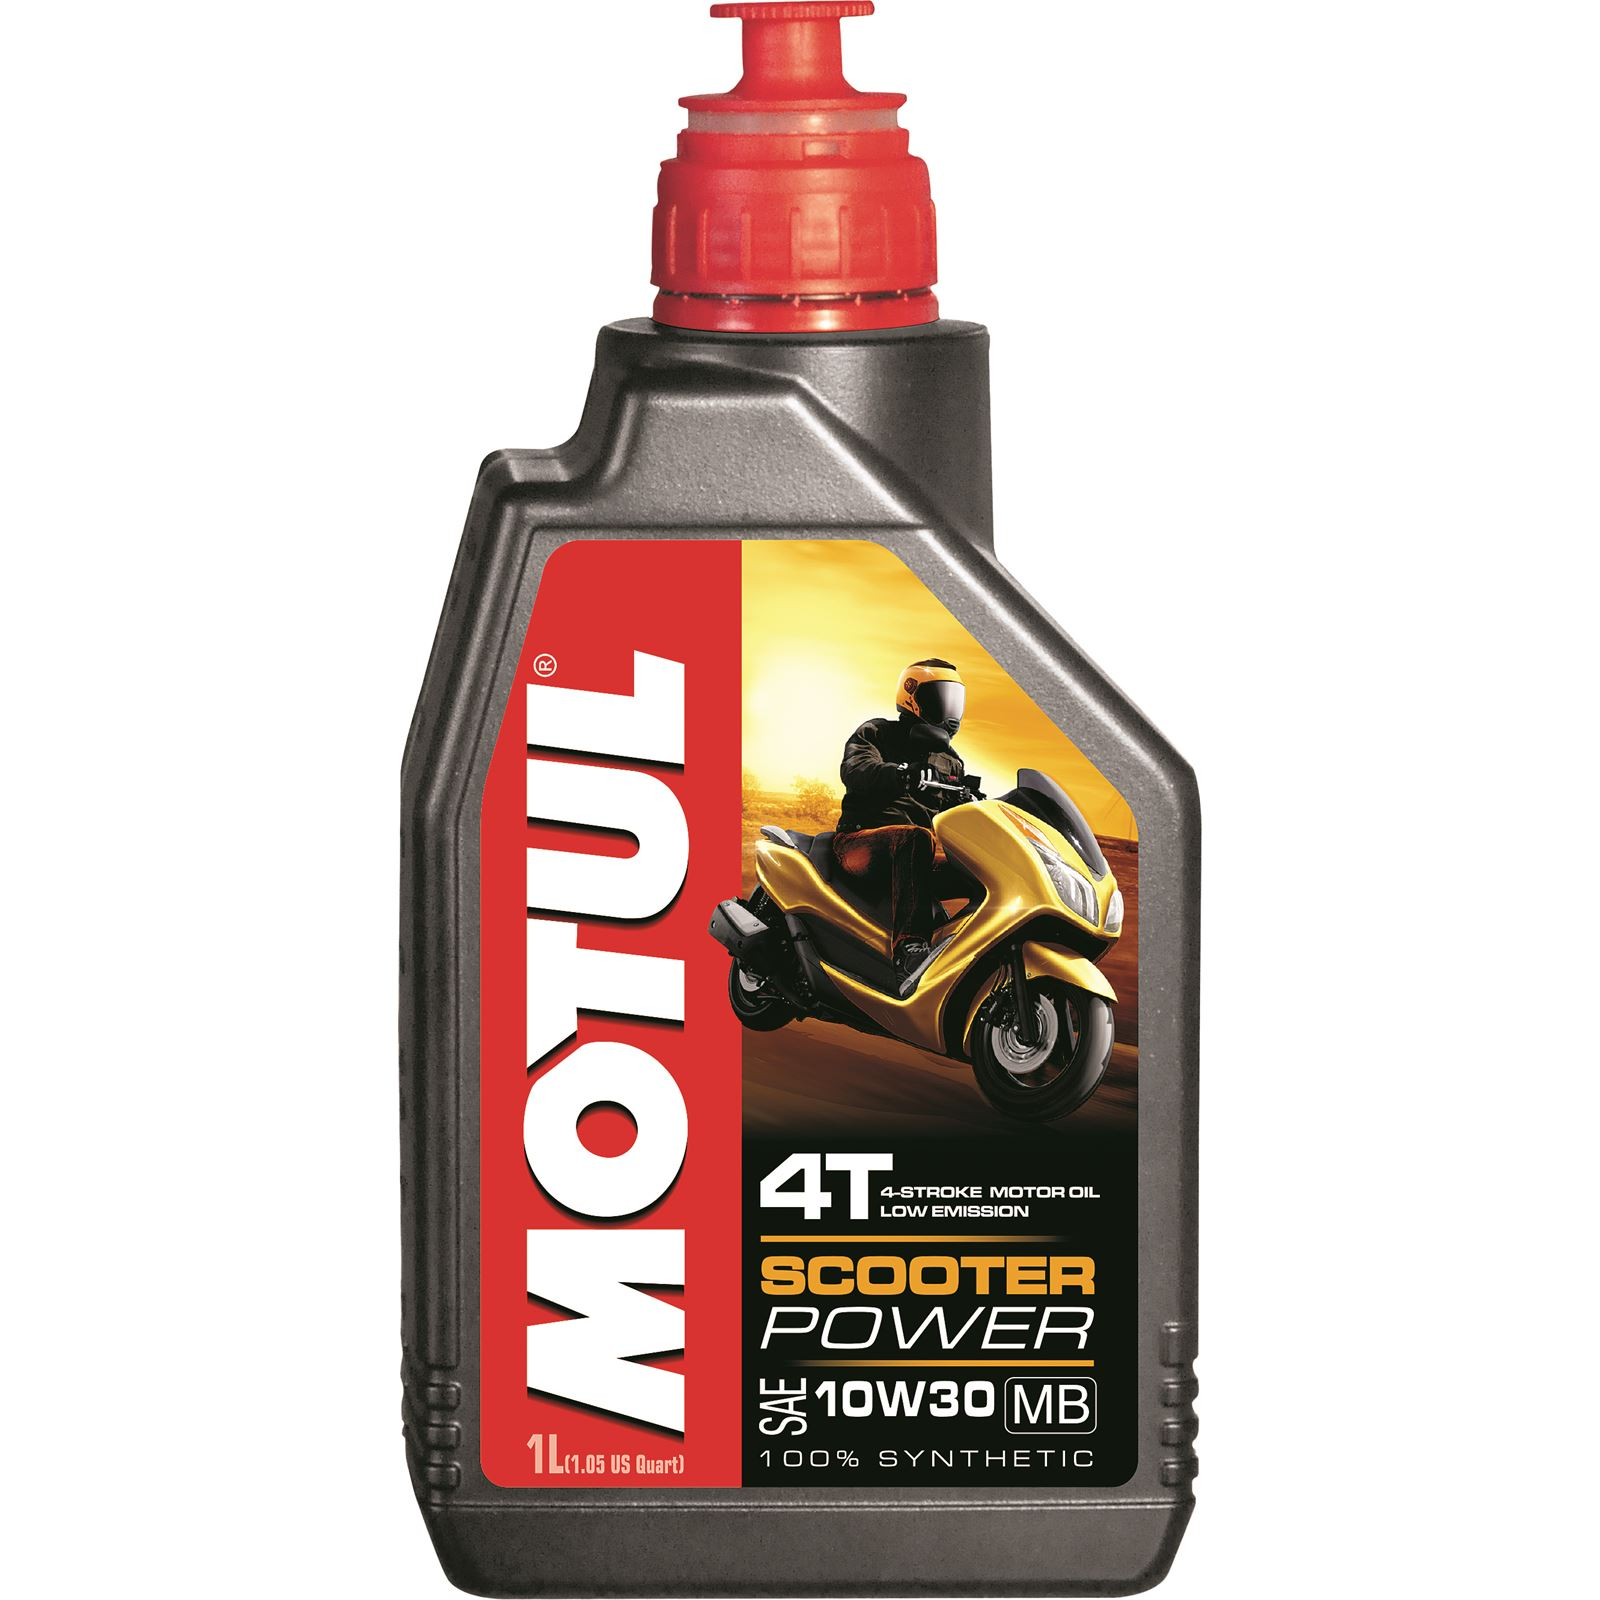 Motul Scooter Power 4T Oil